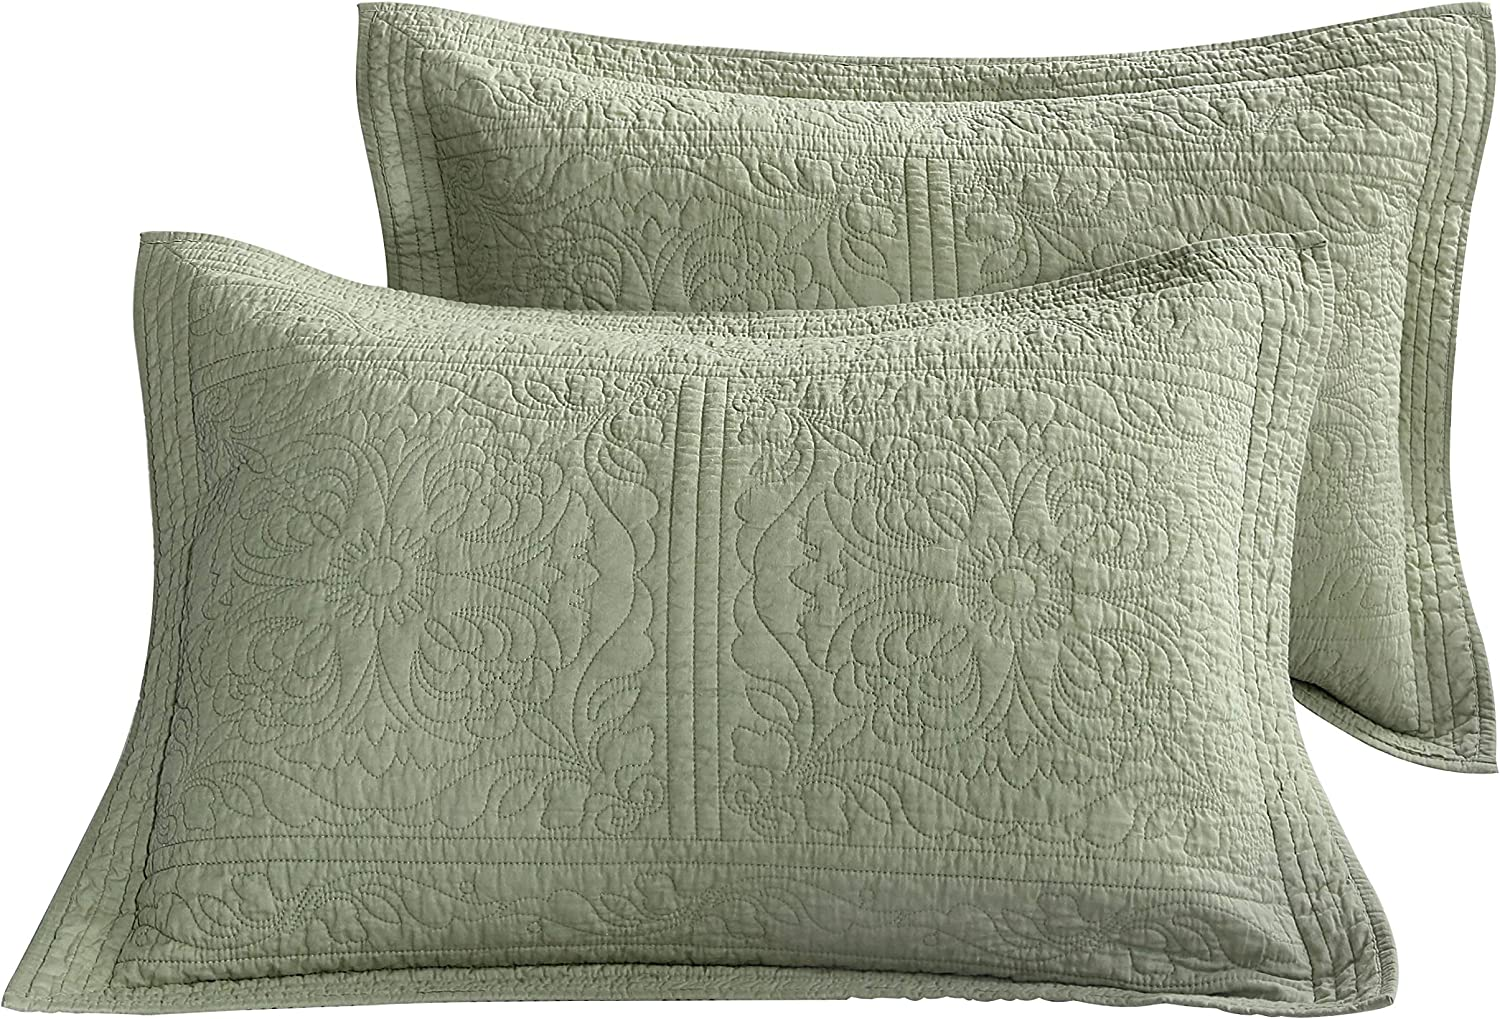 Winlife 100 Cotton Quilted Pillow Sham Floral Printed Pillow Cover Green Amazon Ca Home Kitchen